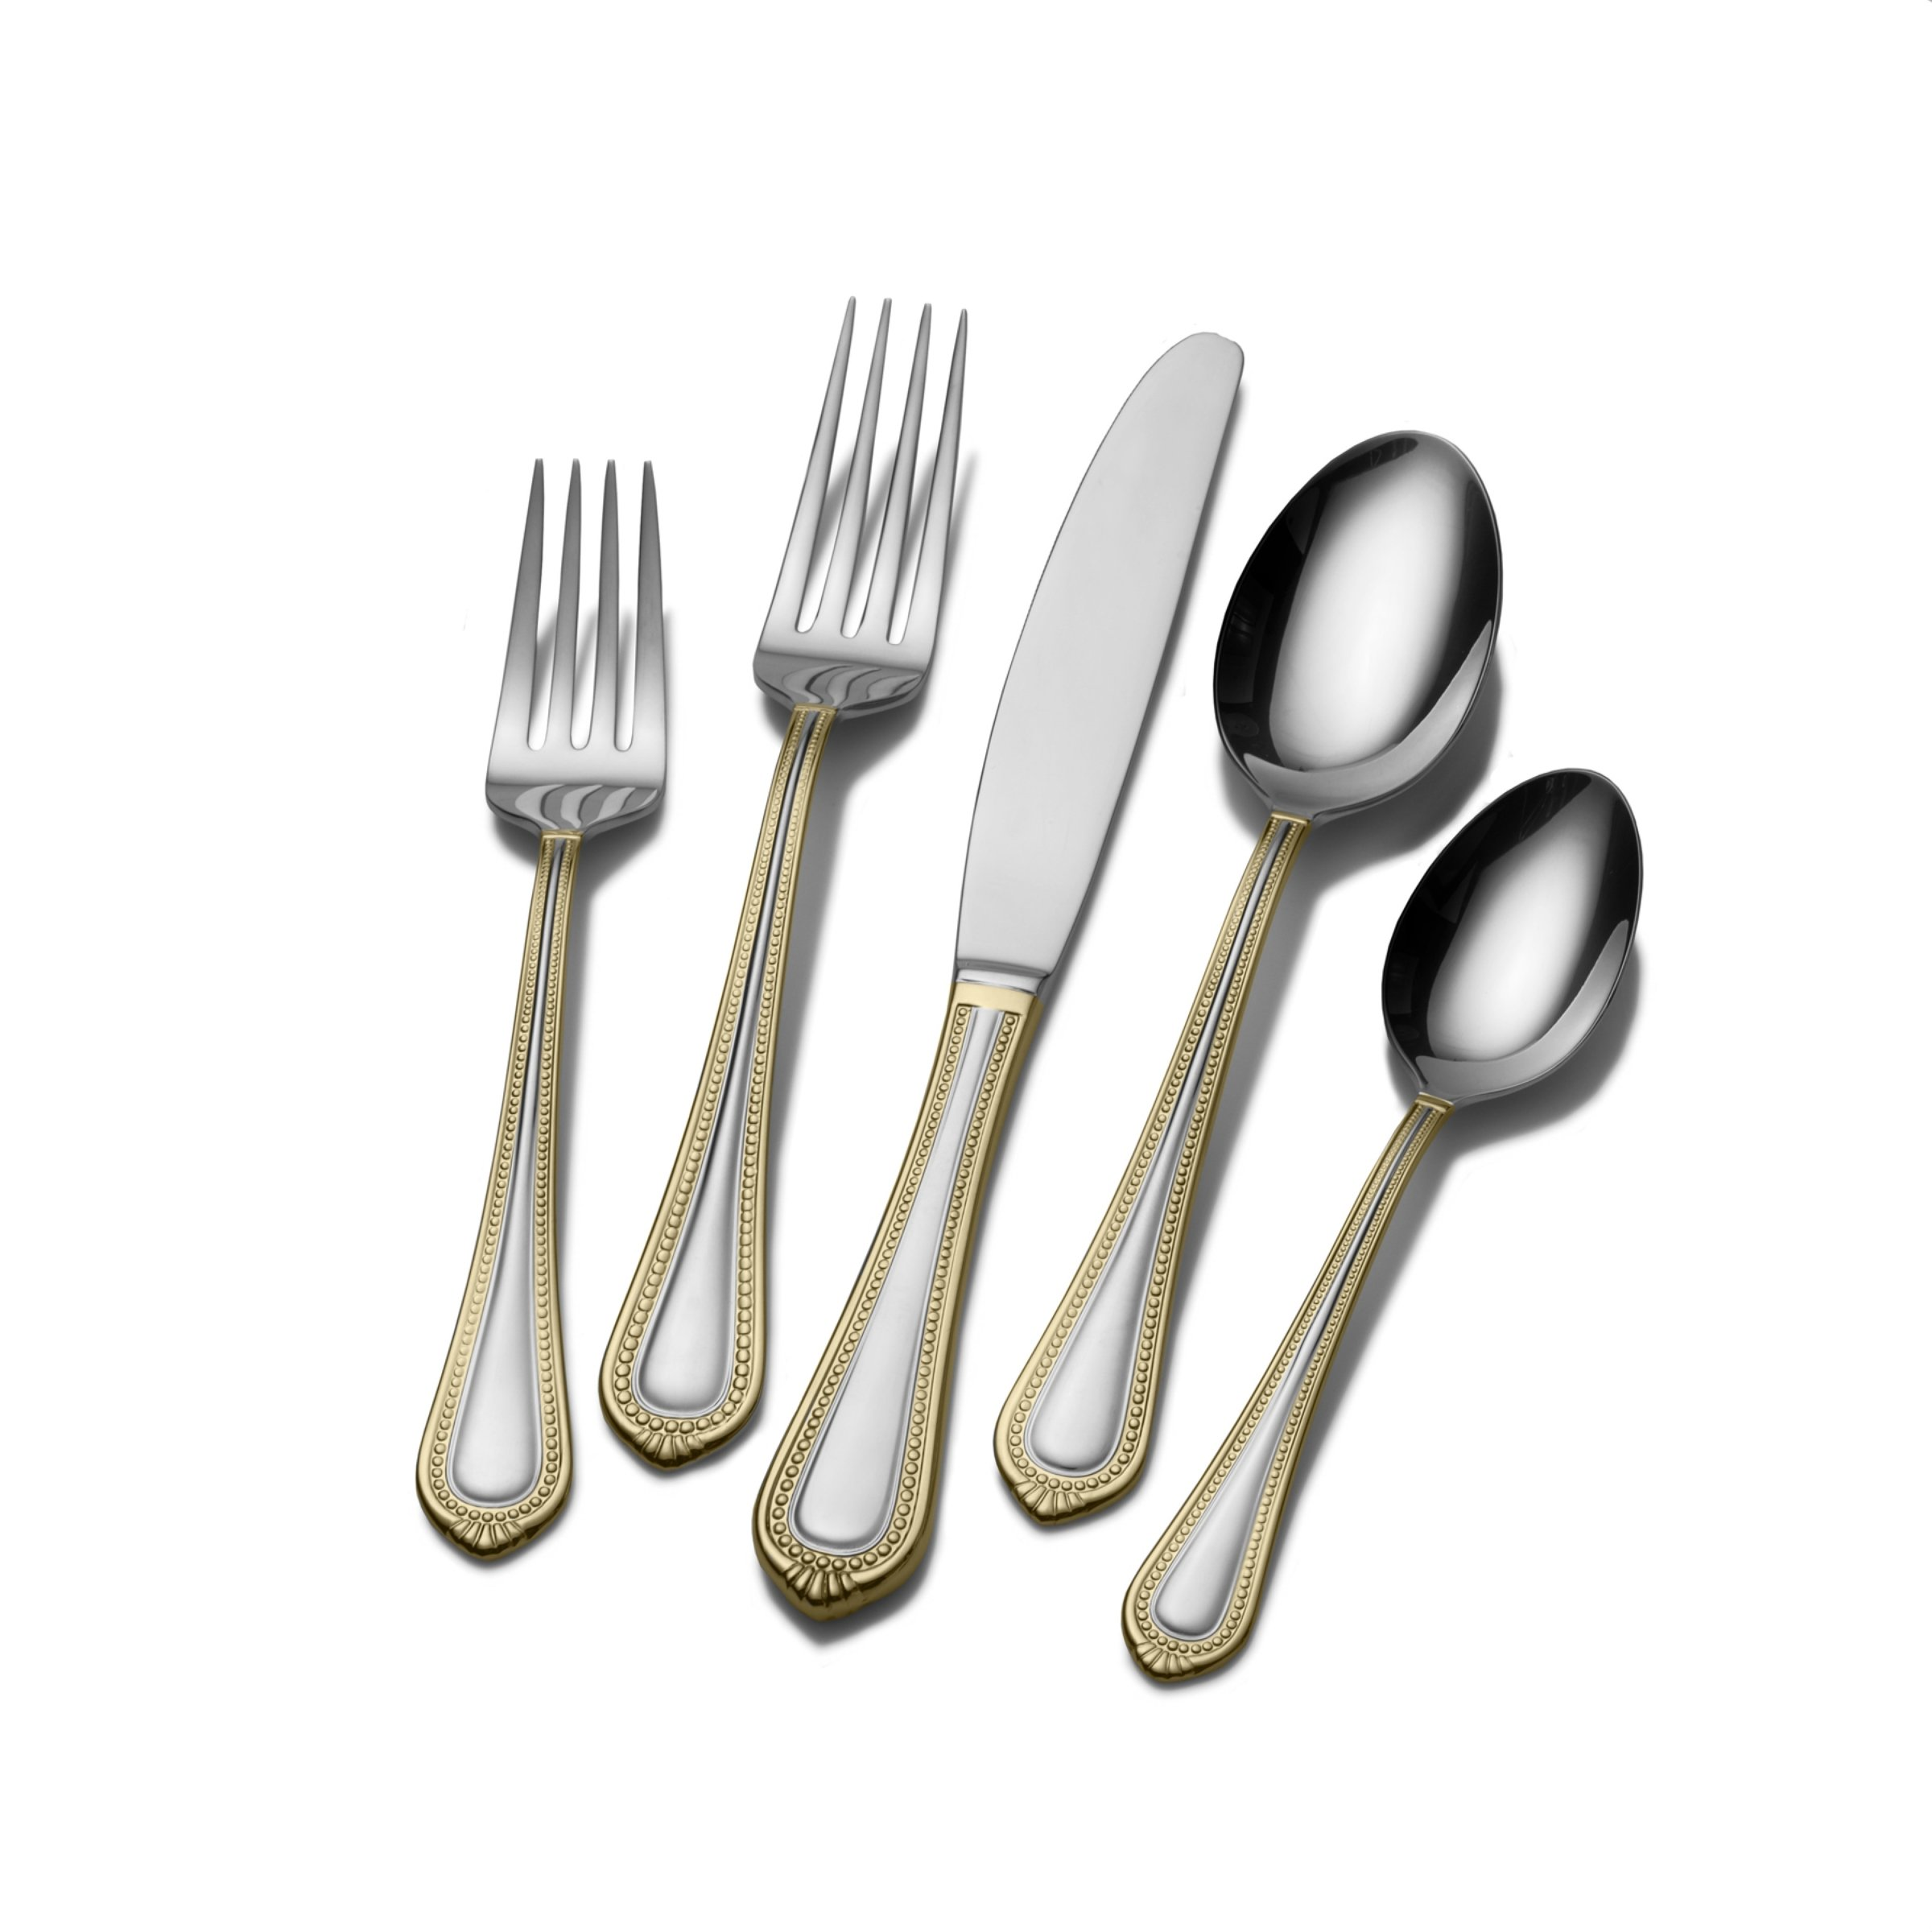 Mikasa Regent Bead Gold 65-Piece Stainless Steel Flatware Set, Service for 12 by Mikasa